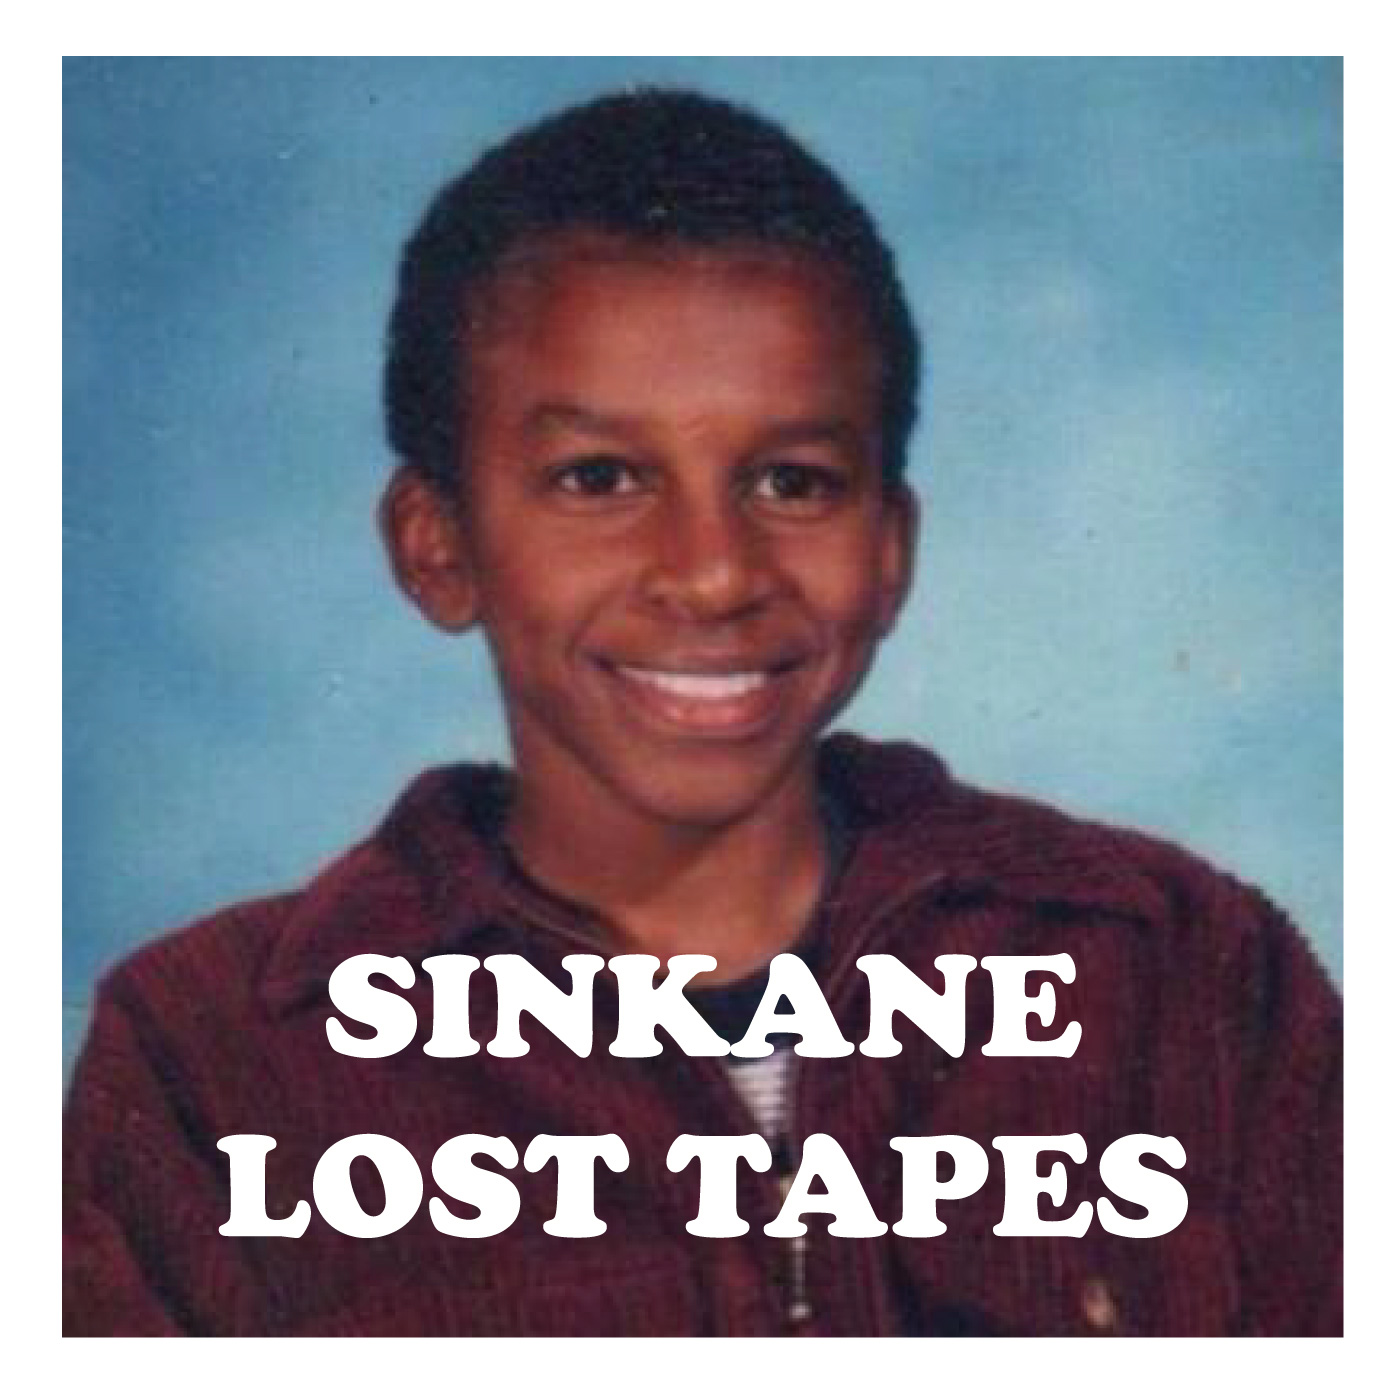 SInkane lost tapes rarities collection album stream artwork